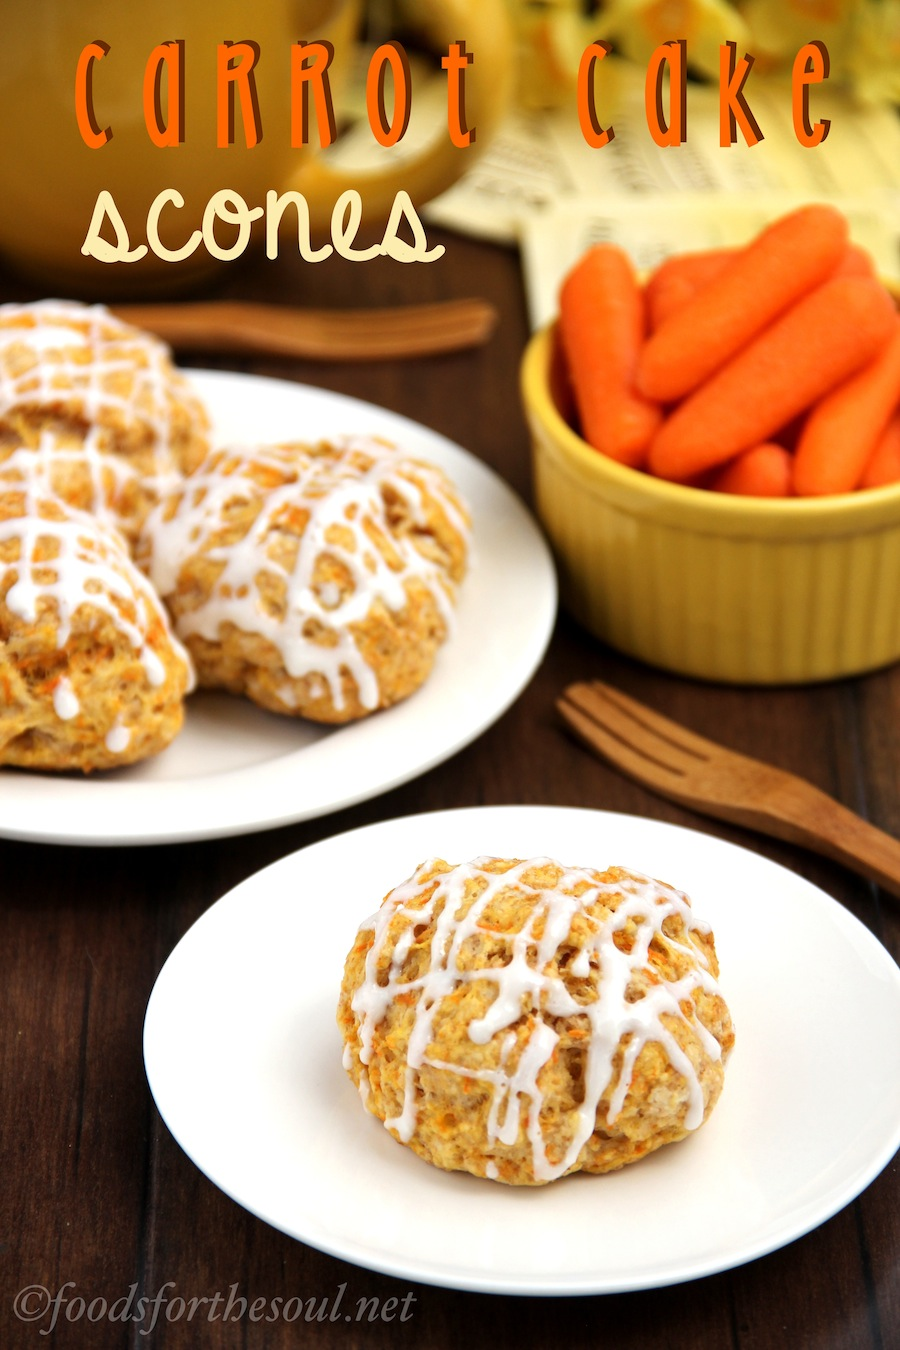 Recipe: Carrot Cake Scones